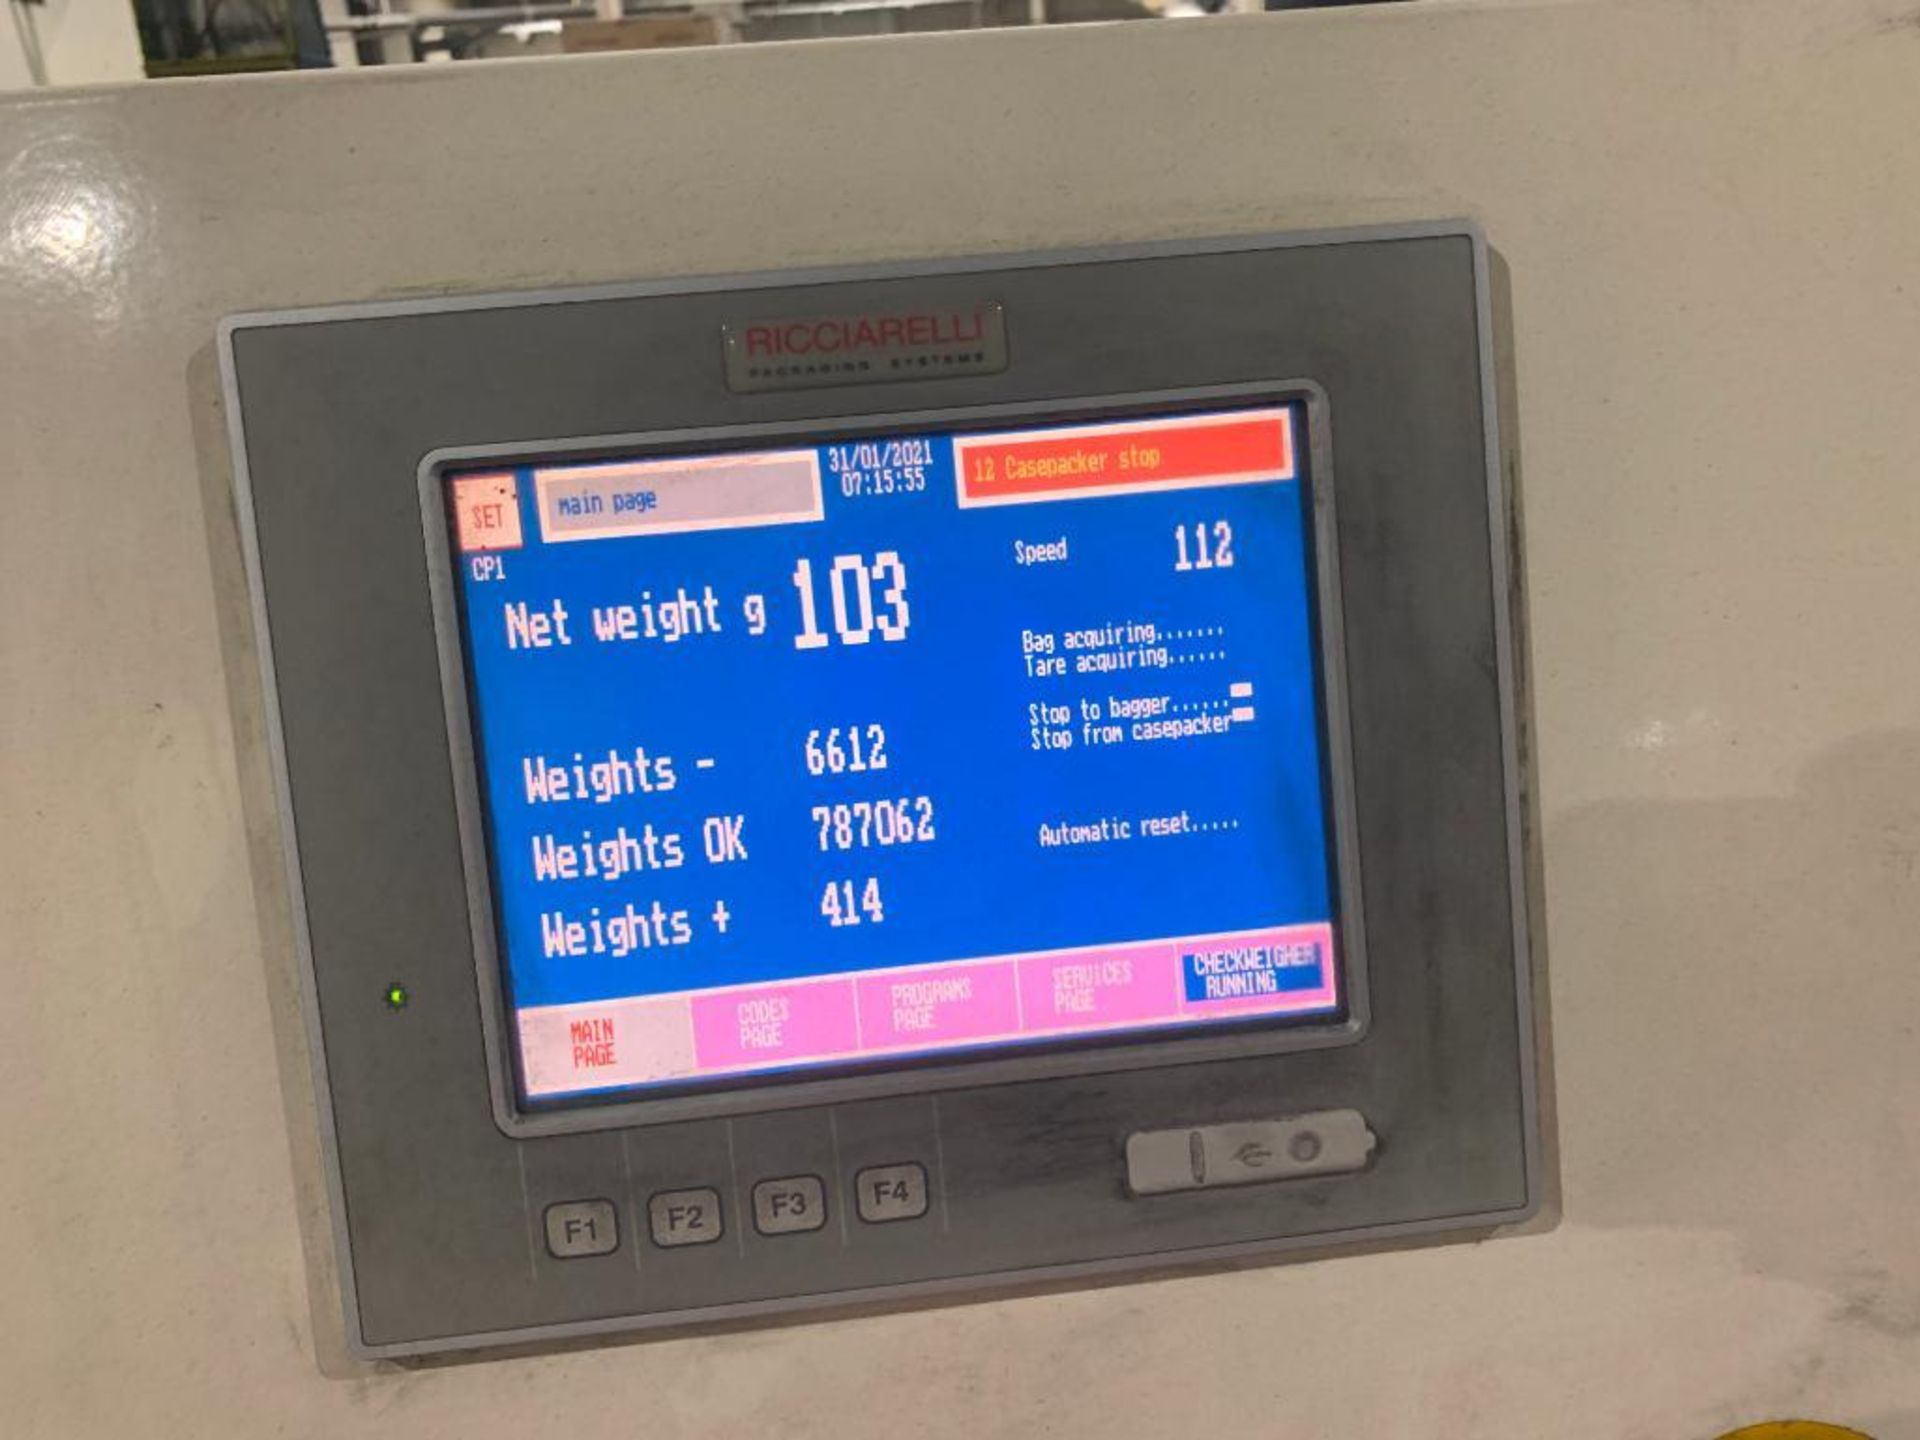 Ricciarelli high speed check weigher - Image 11 of 12